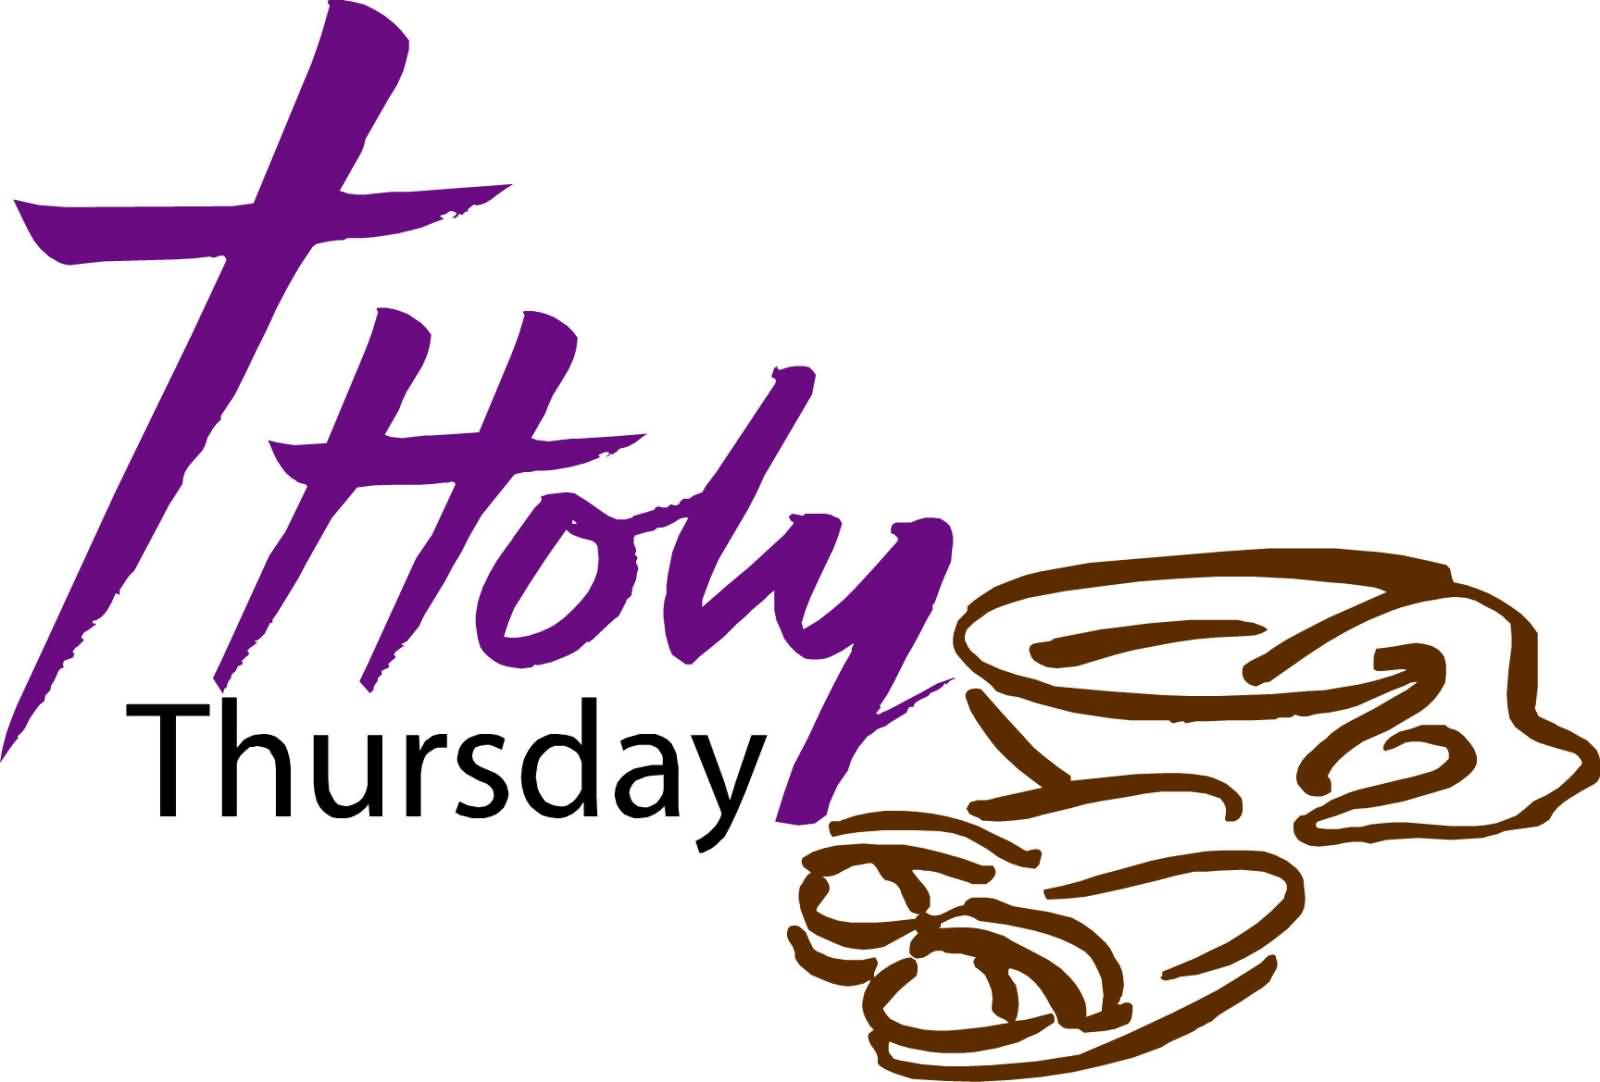 Holy Thursday Wishes Clipart